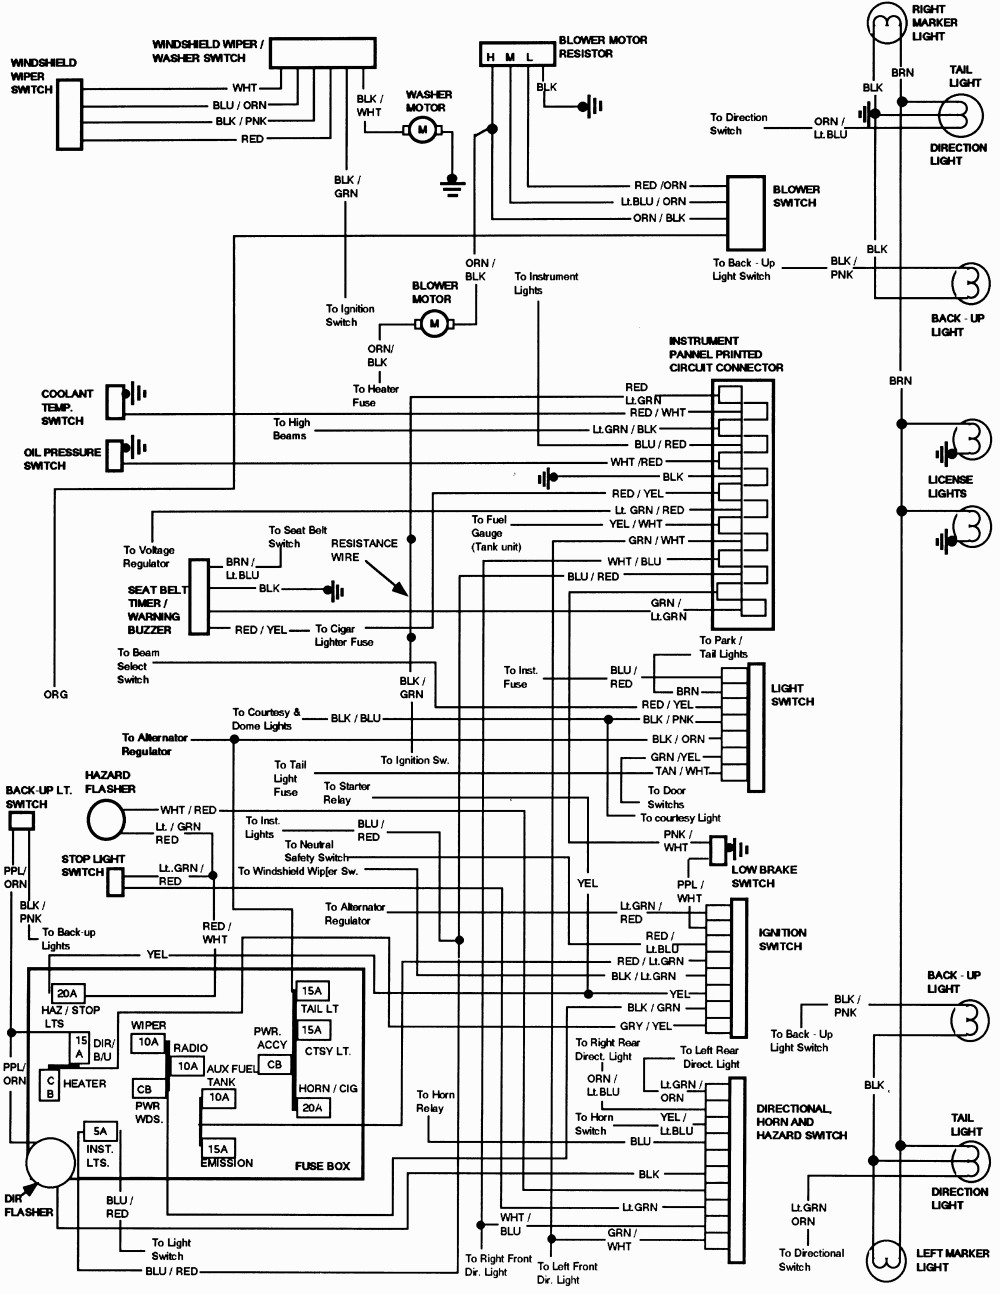 95 ford f150 ignition wiring diagram collection 1990 ford f 150 ignition switch wiring diagram